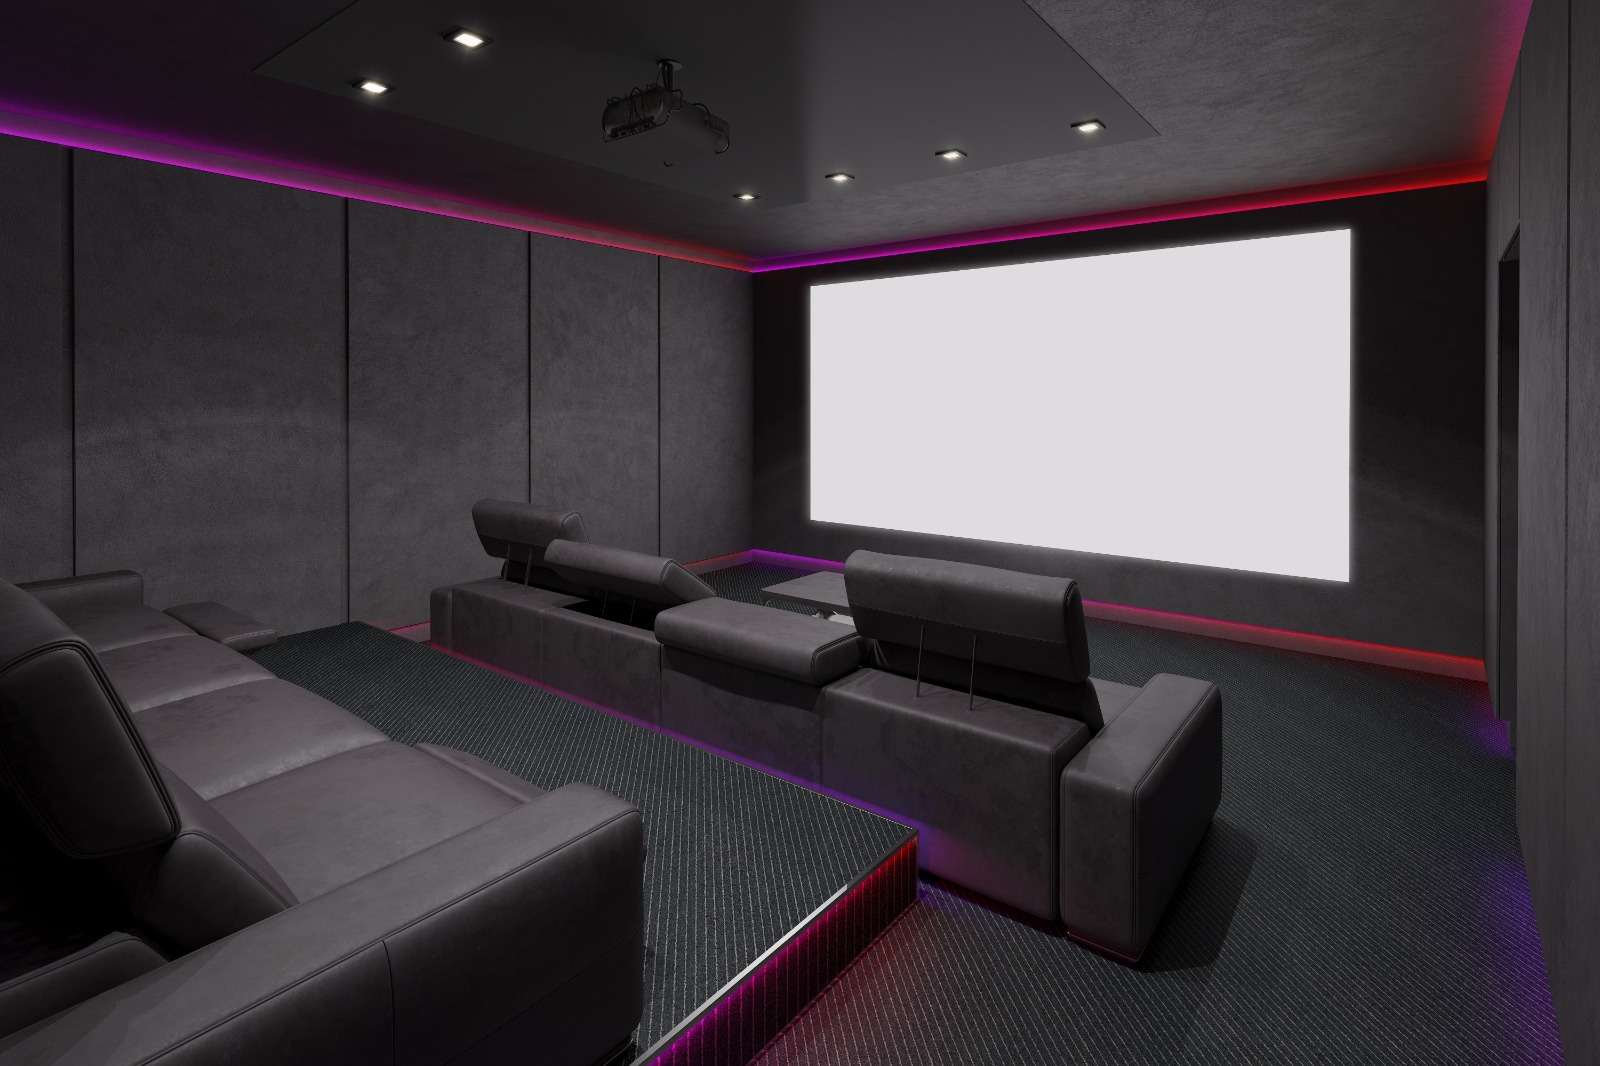 New Home Entertainment Theatre Room Construction with Leather Cinema Seats and Red Ambient Lighting | Best General Contractor for Home Entertainment Systems in Los Angeles | High Class Builders